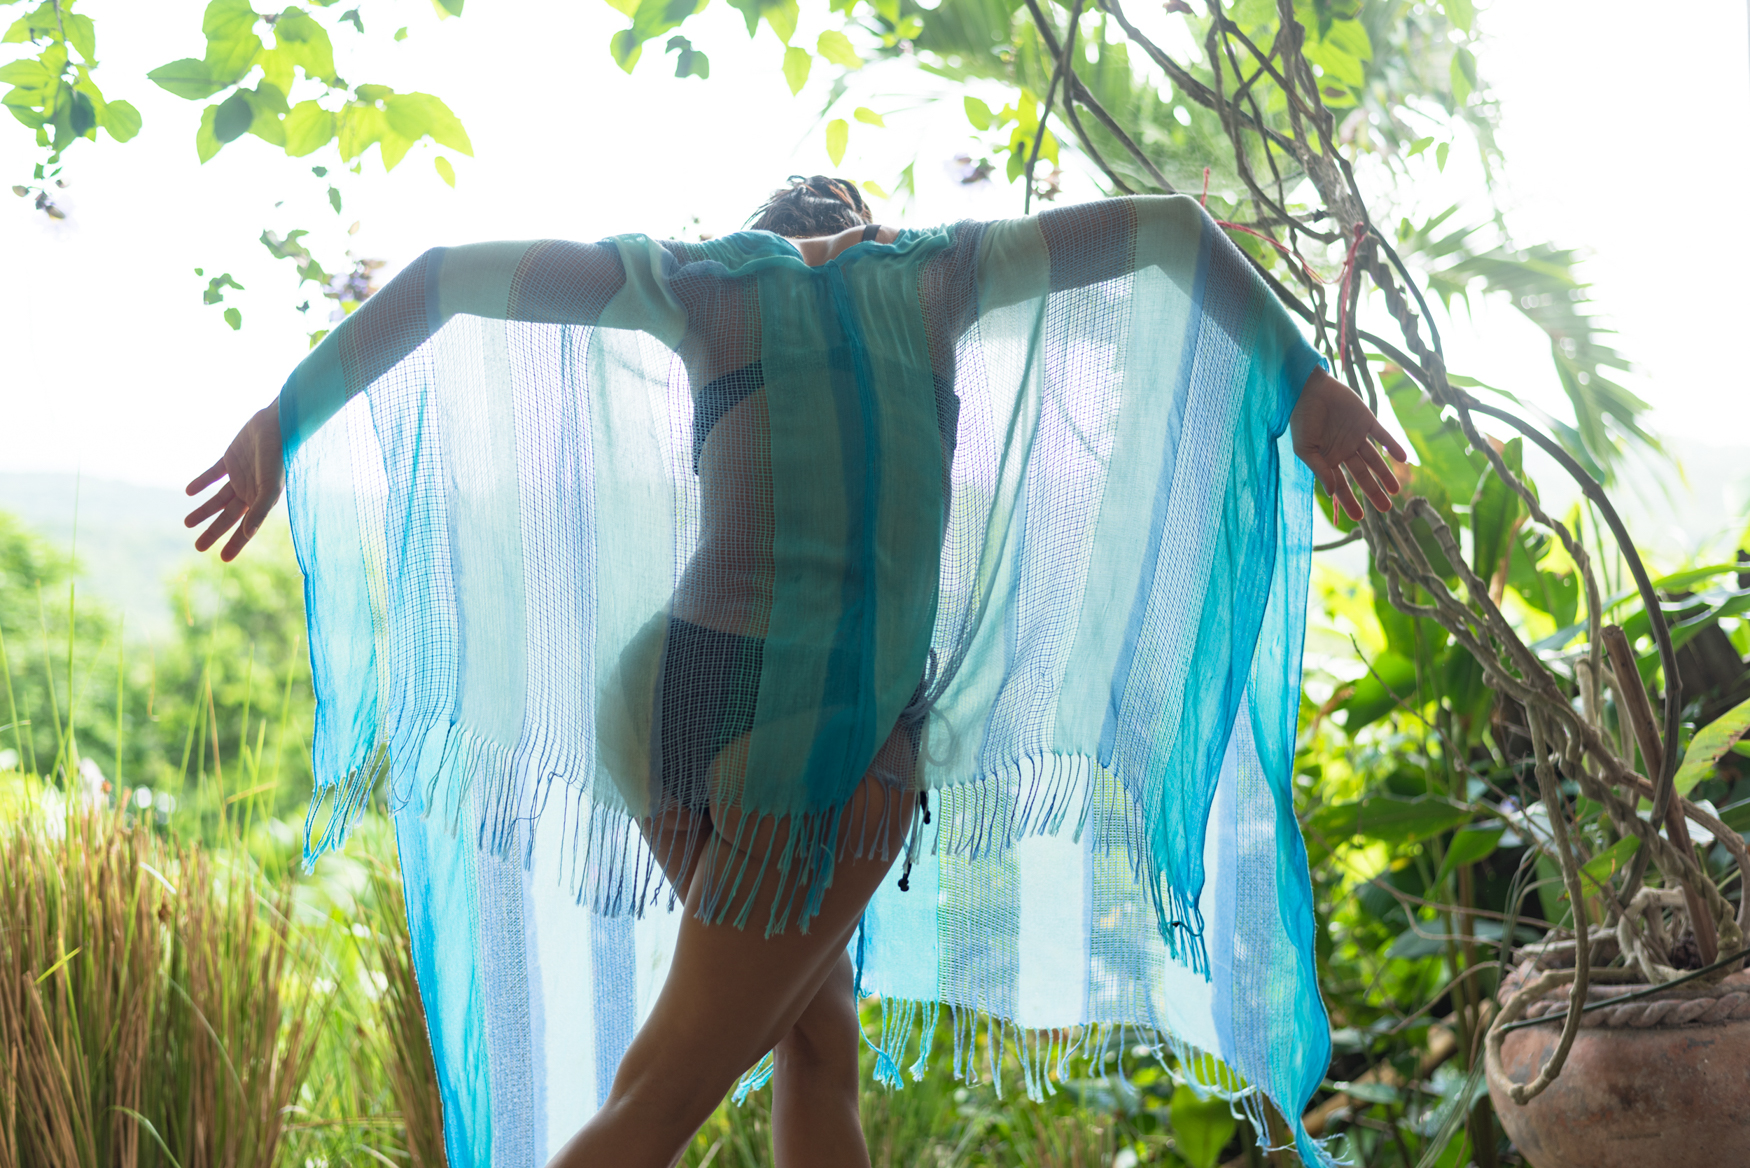 Yoga-Inspired-Practices-Photography-Costa-Rica-20.jpg